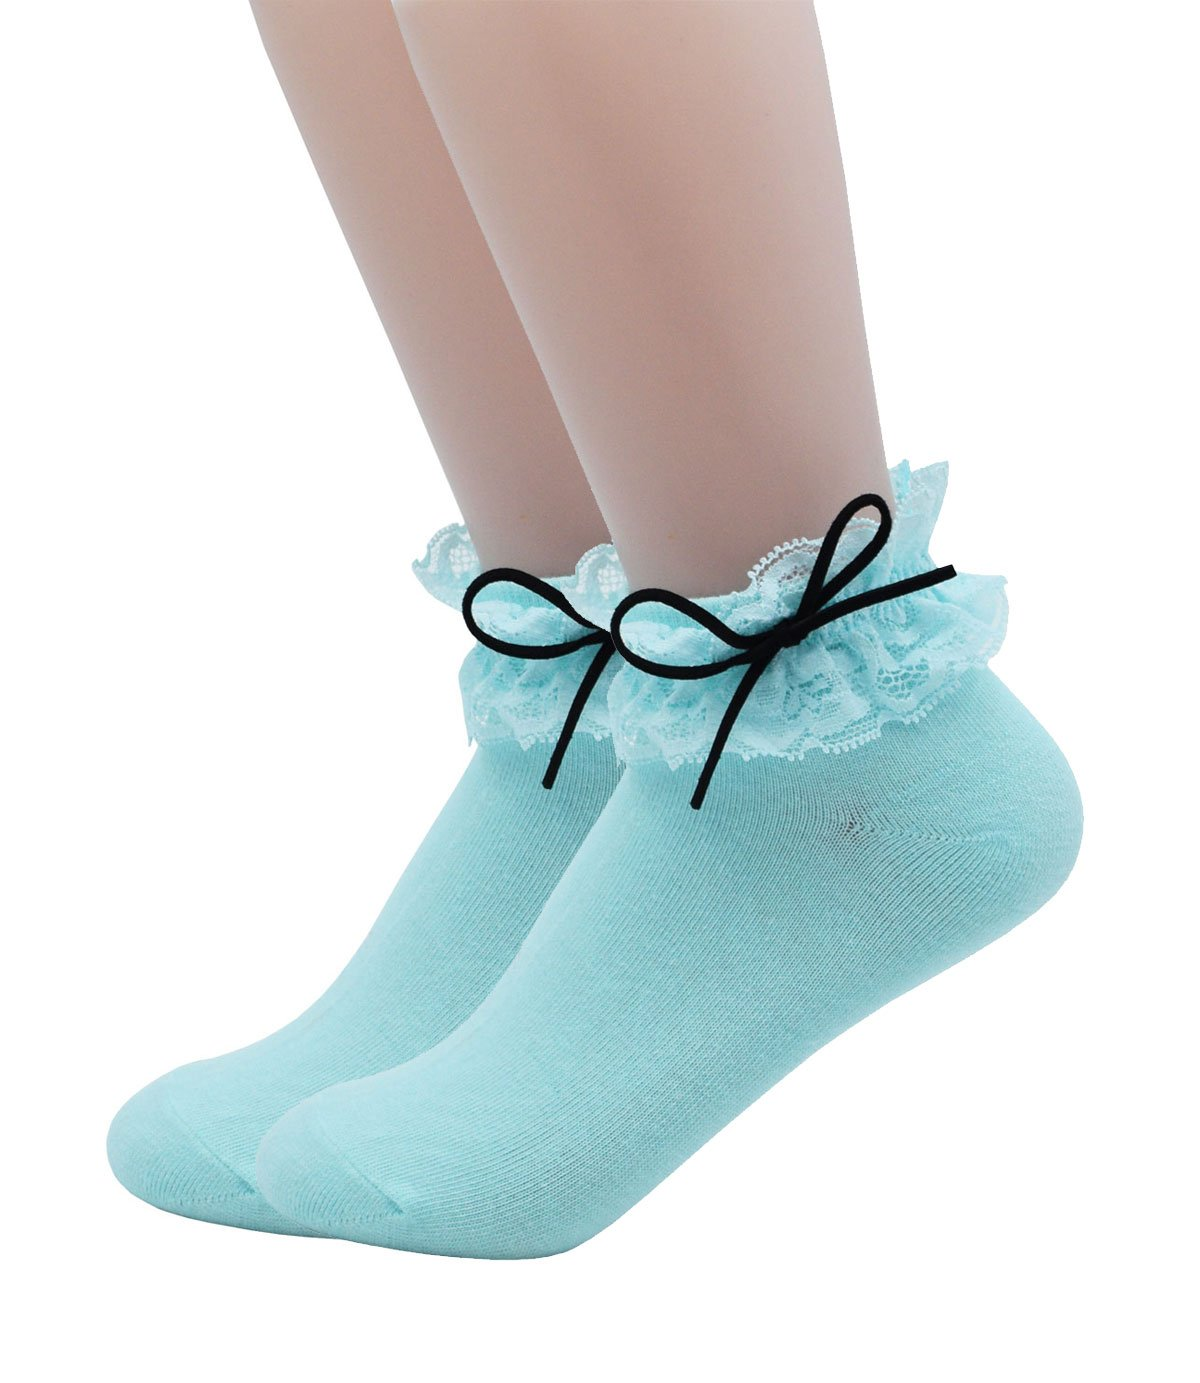 YJLSO Women Lace Ruffle Frilly Cotton Socks Princess Socks Ankle Socks,2 pairs, Style C04 (Blue)